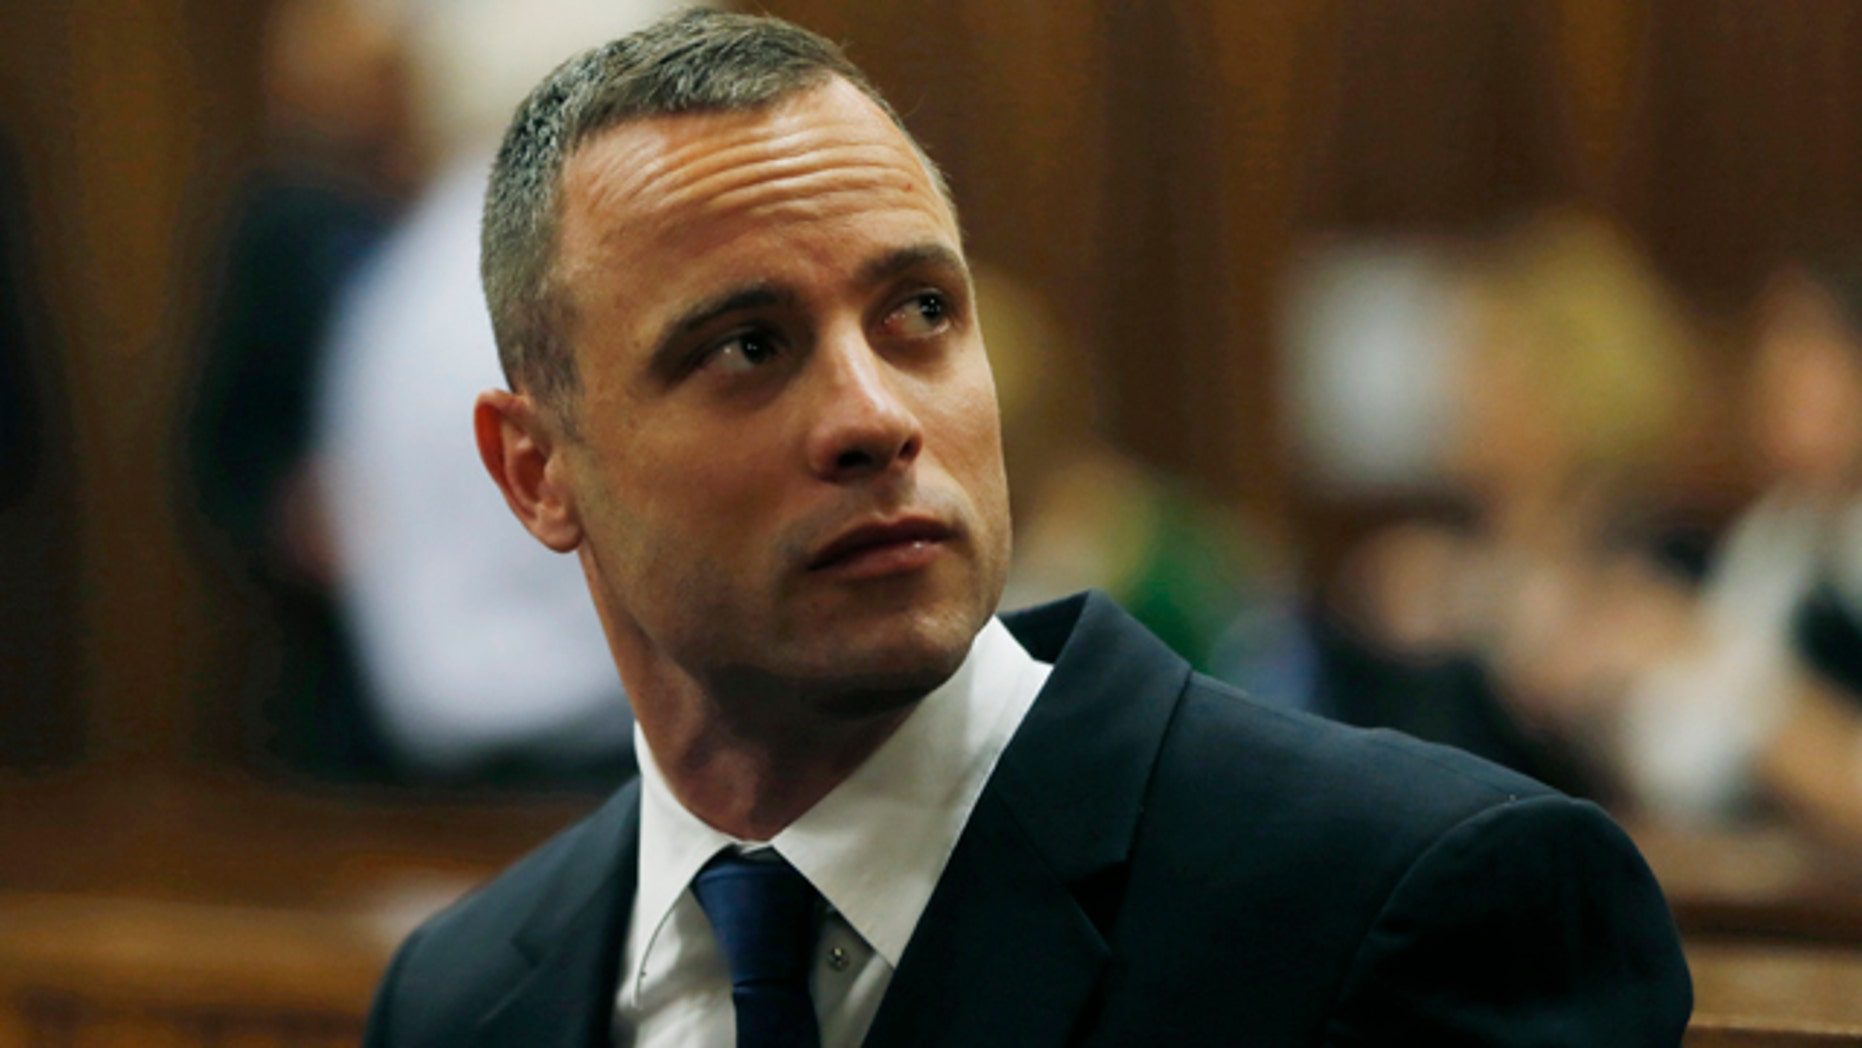 May 6, 2014: Oscar Pistorius is seated in a courtroom at the high court in Pretoria, South Africa. (AP Photo/Mike Hutchings, Pool)